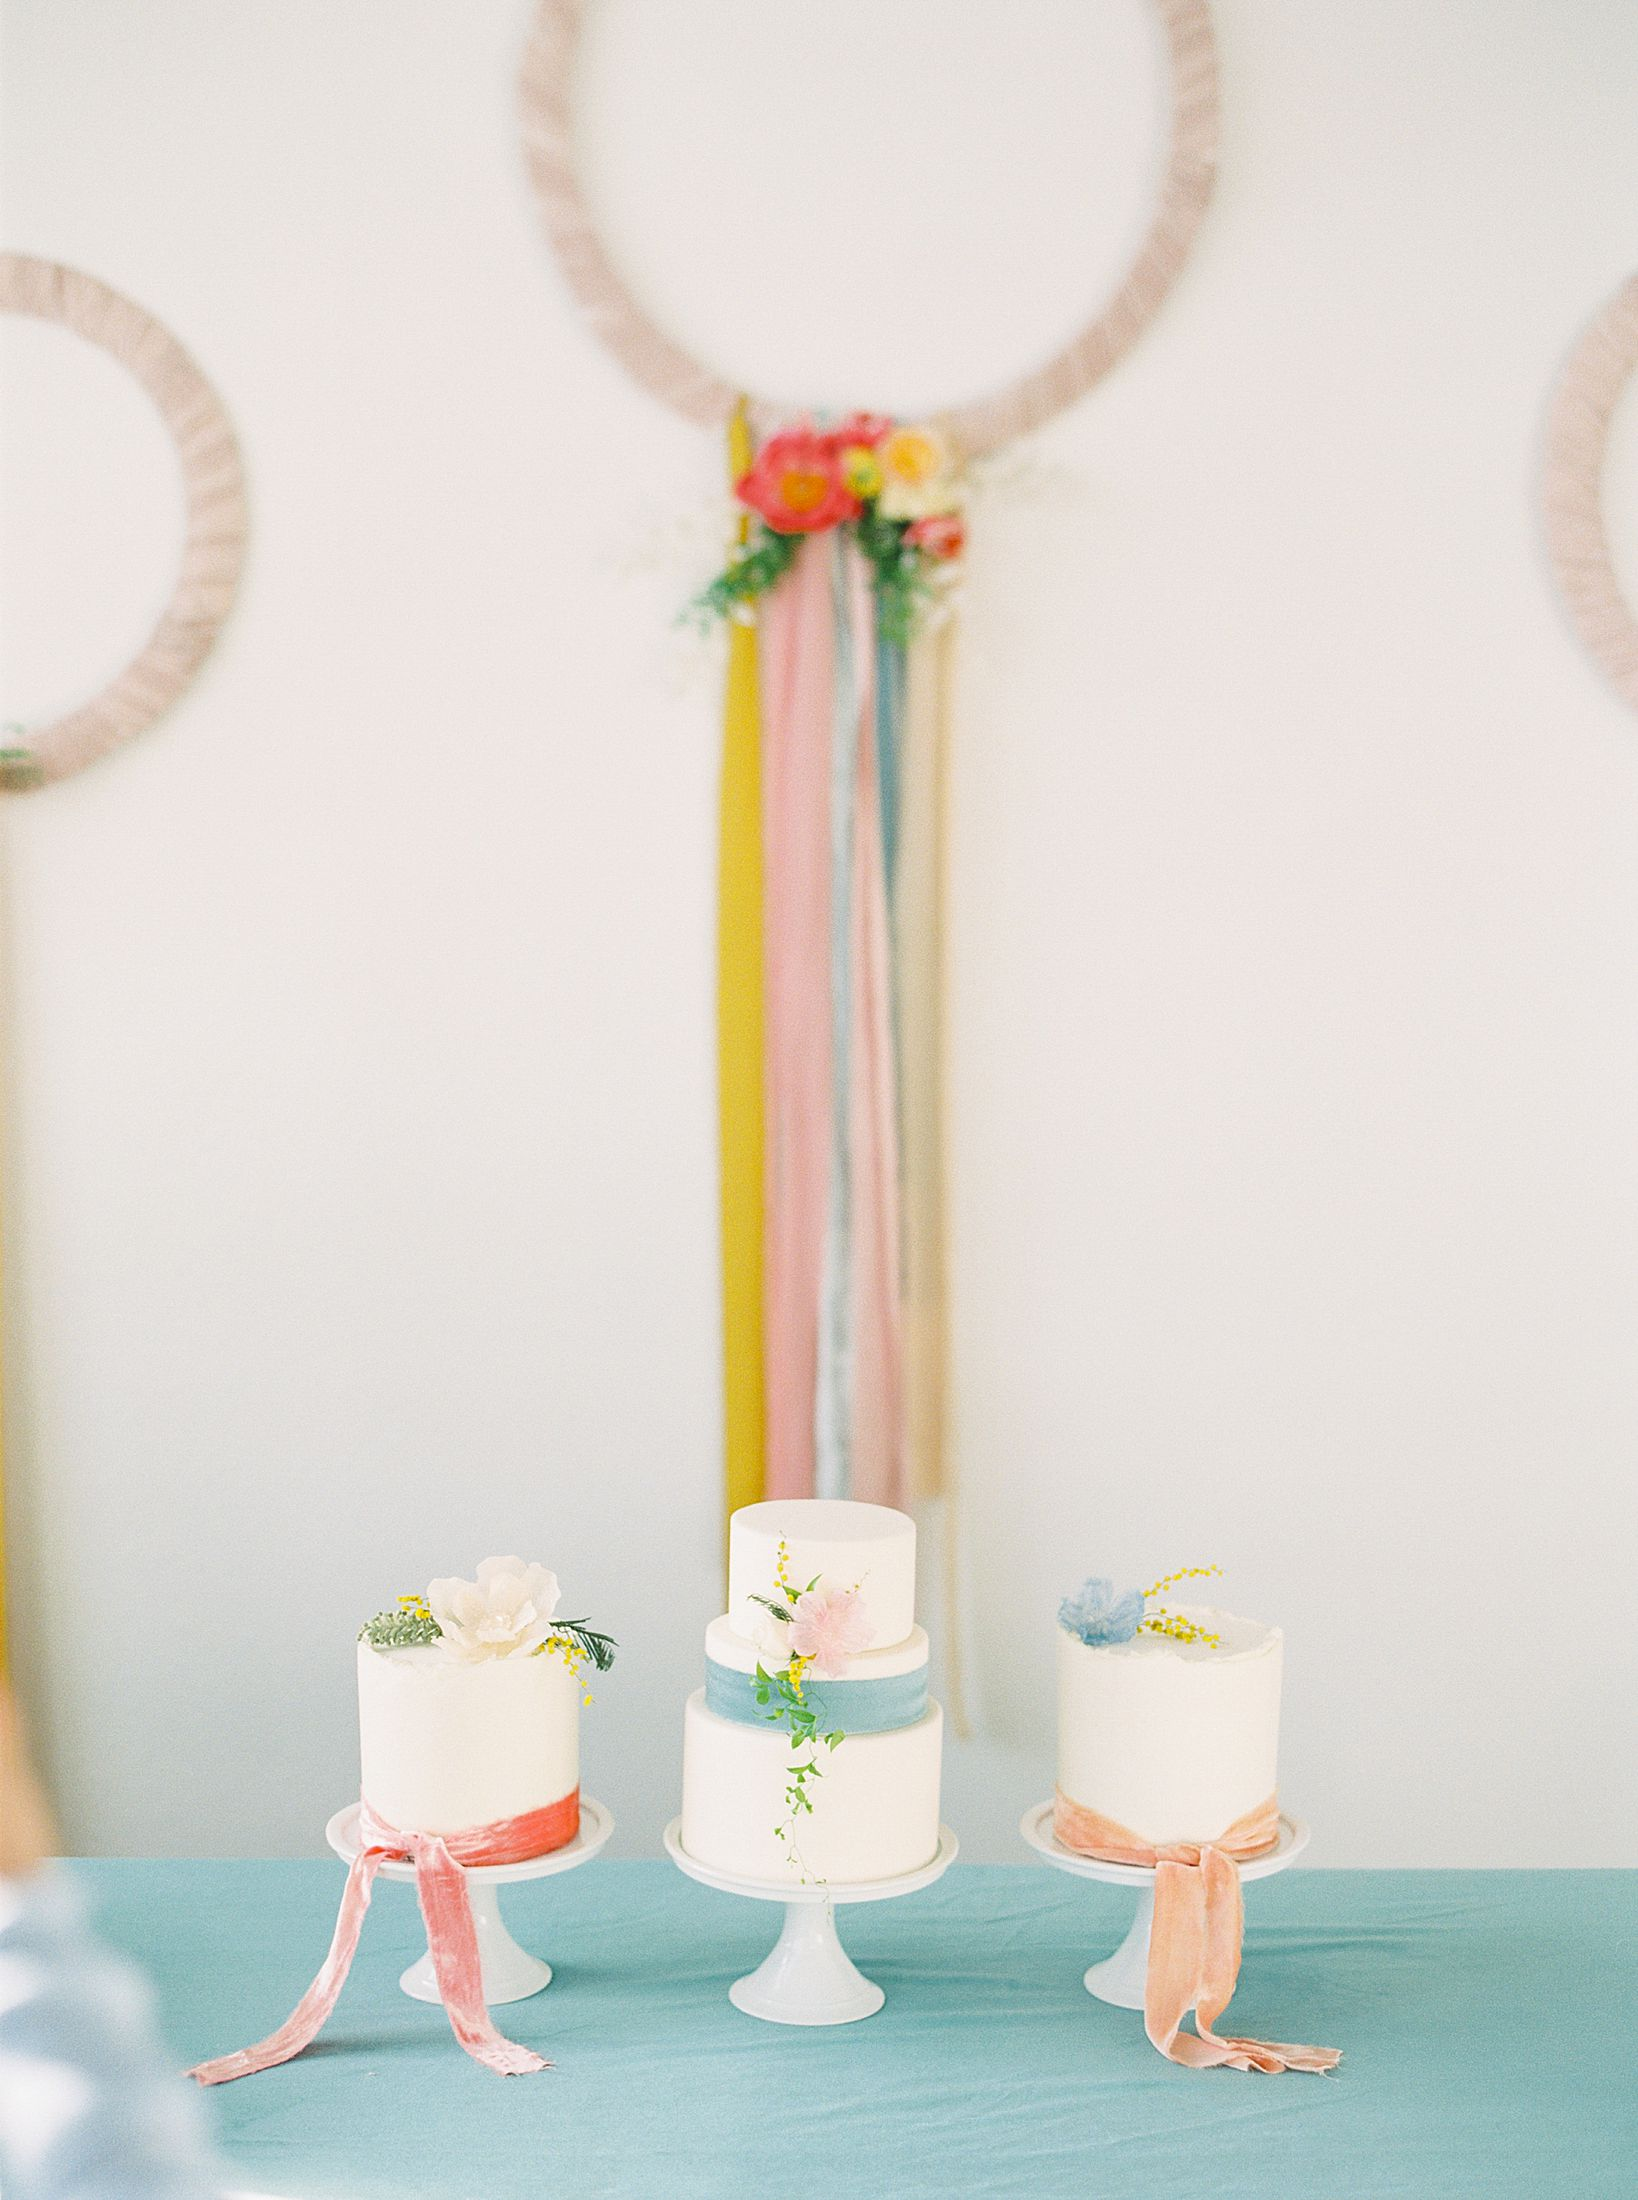 Bay Area Spring Wedding Inspiration - Ashley Baumgartner - Inspired By This - Party Crush Studio and Lens of Lenox Videography - Bay Area Wedding Photography_0013.jpg